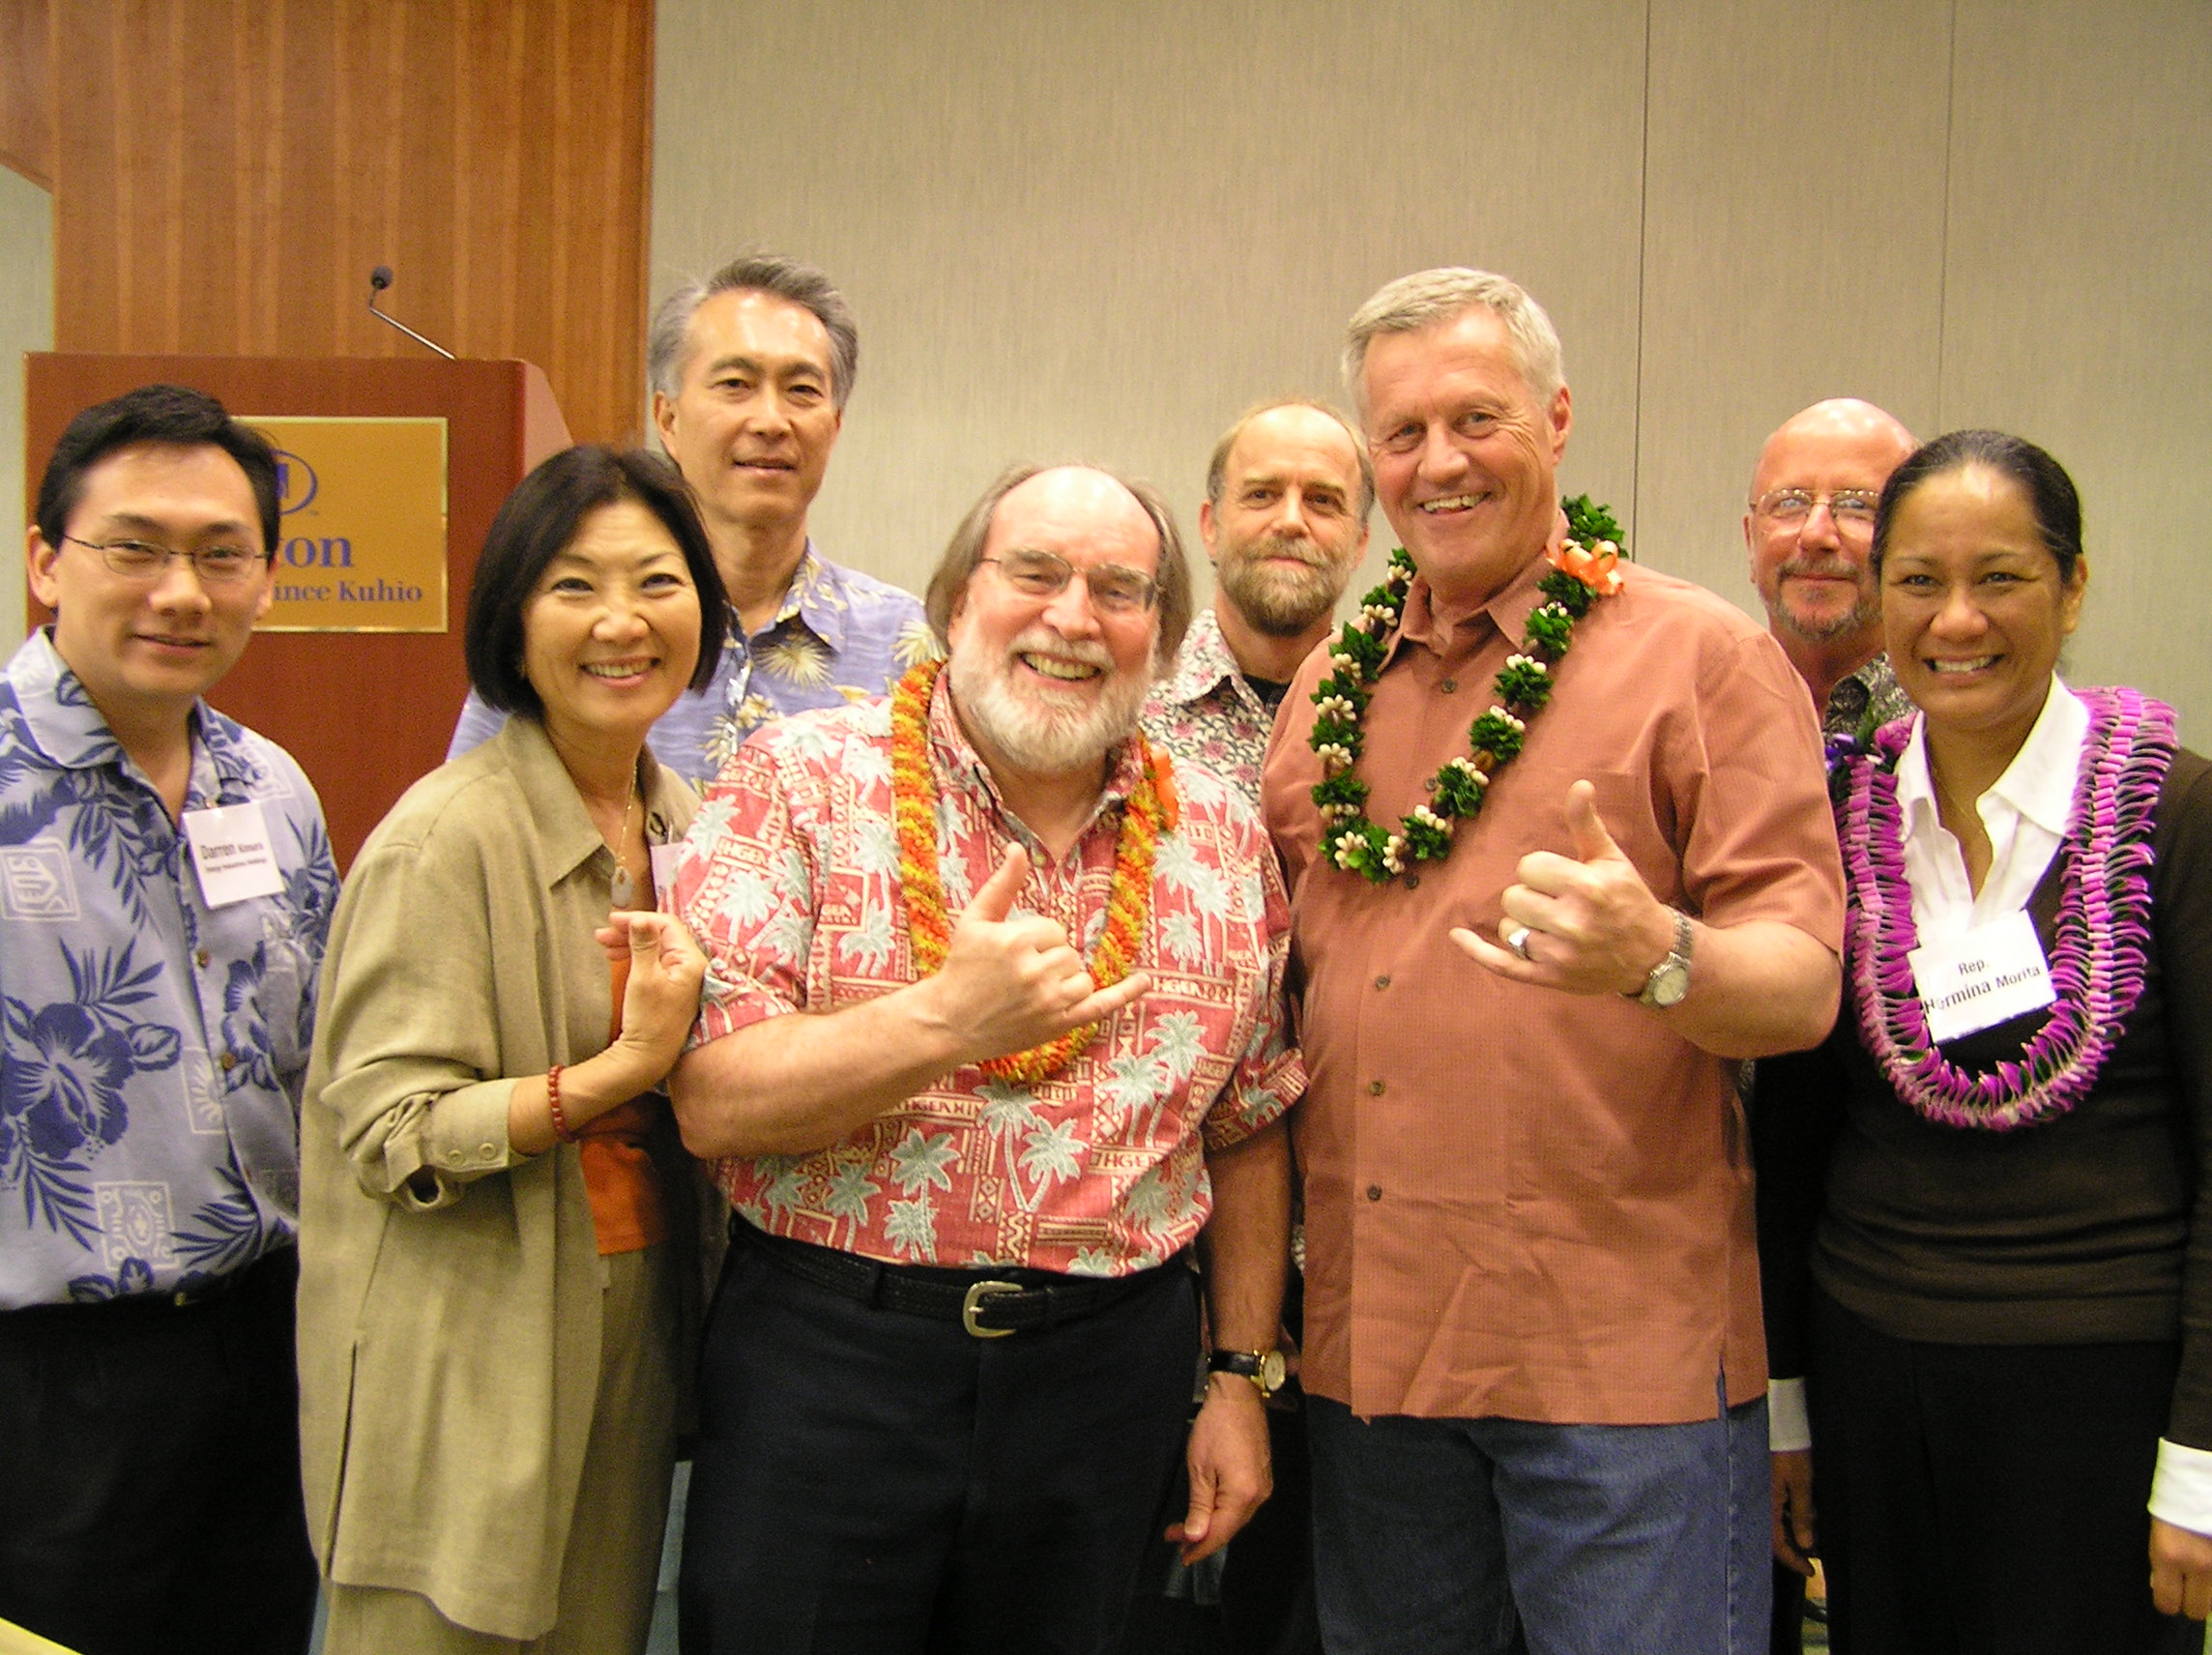 Hawaii Energy Policy Forum - Representative Peterson